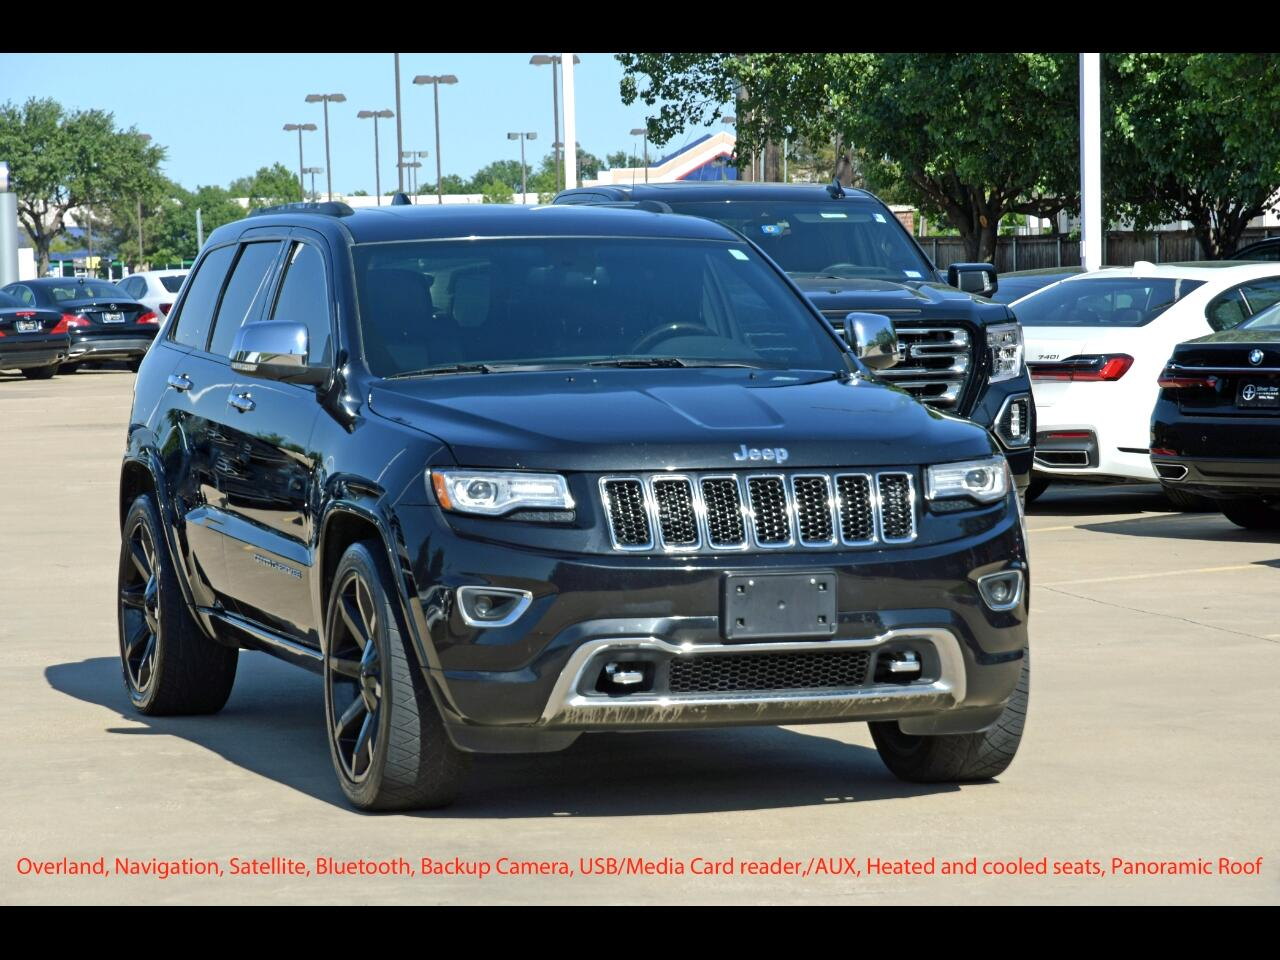 Jeep Grand Cherokee RWD 4dr Overland 2014